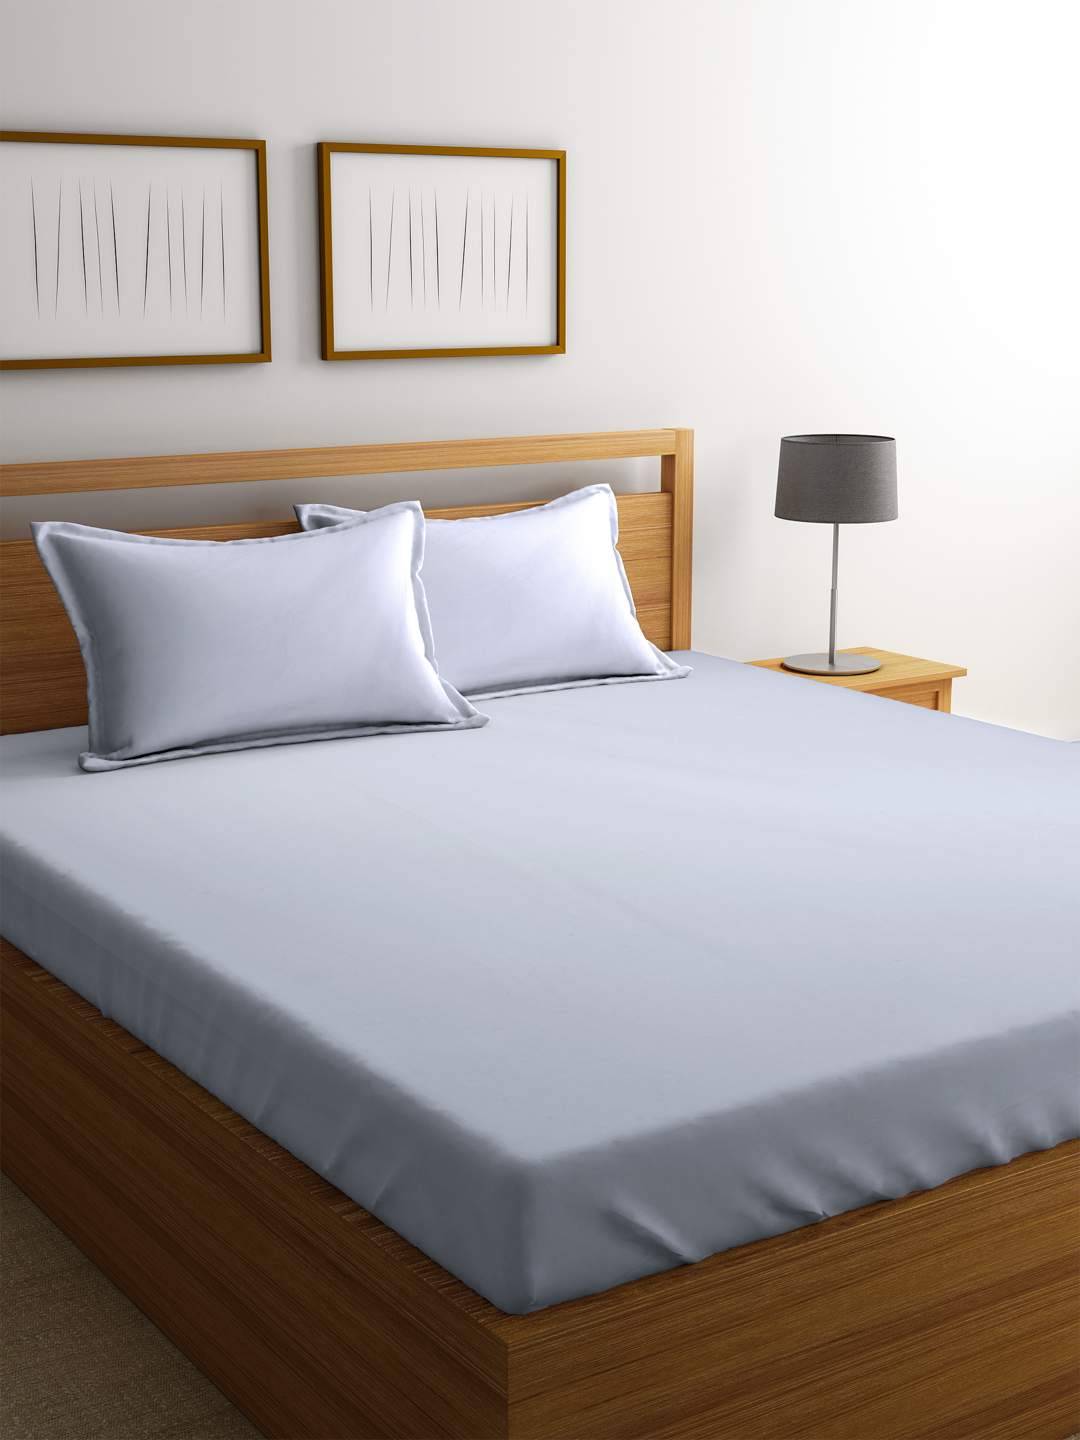 Portico Supercale Cotton Double Bed Sheets in White Colour by Portico